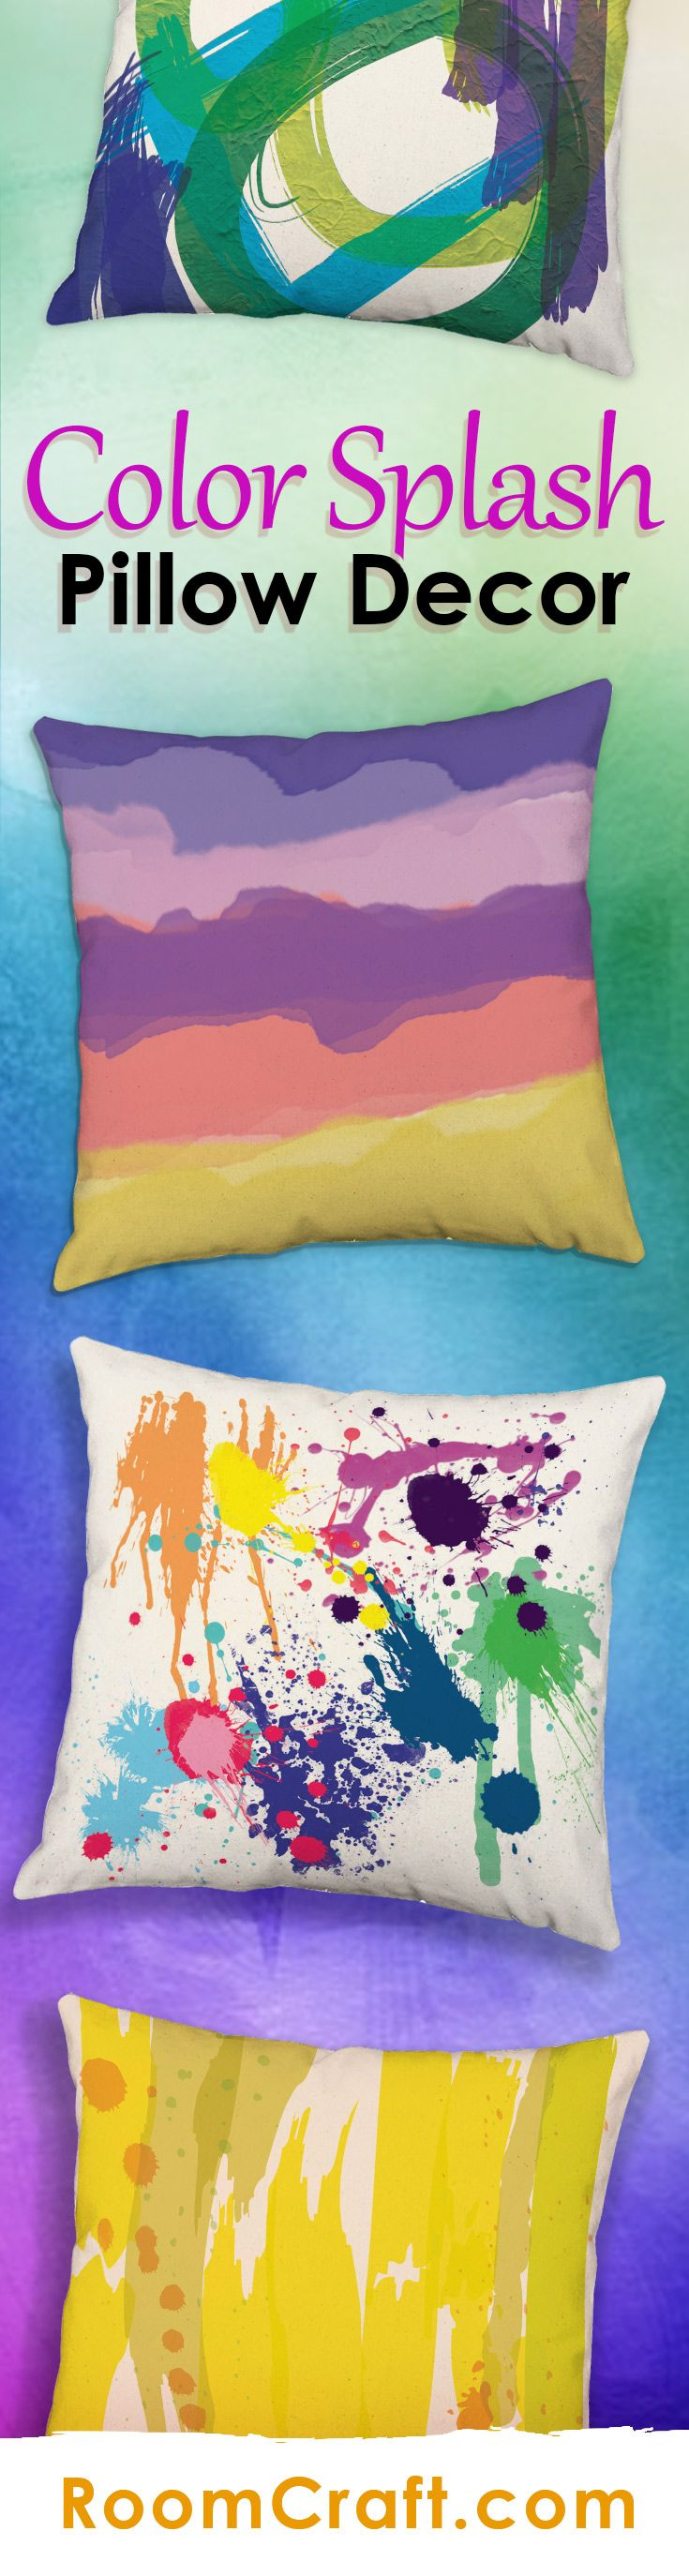 These bright and colorful artistic throw pillows will add a pop of color to any space. Each design is offered in multiple fabrics, colors, and sizes making them a great addition to any room, studio or gallery. Our quality art pillow covers are made to order in the USA and feature 3 wooden buttons on the back for closure. Choose your favorite and create a truly unique artistic pillow set. #roomcraft